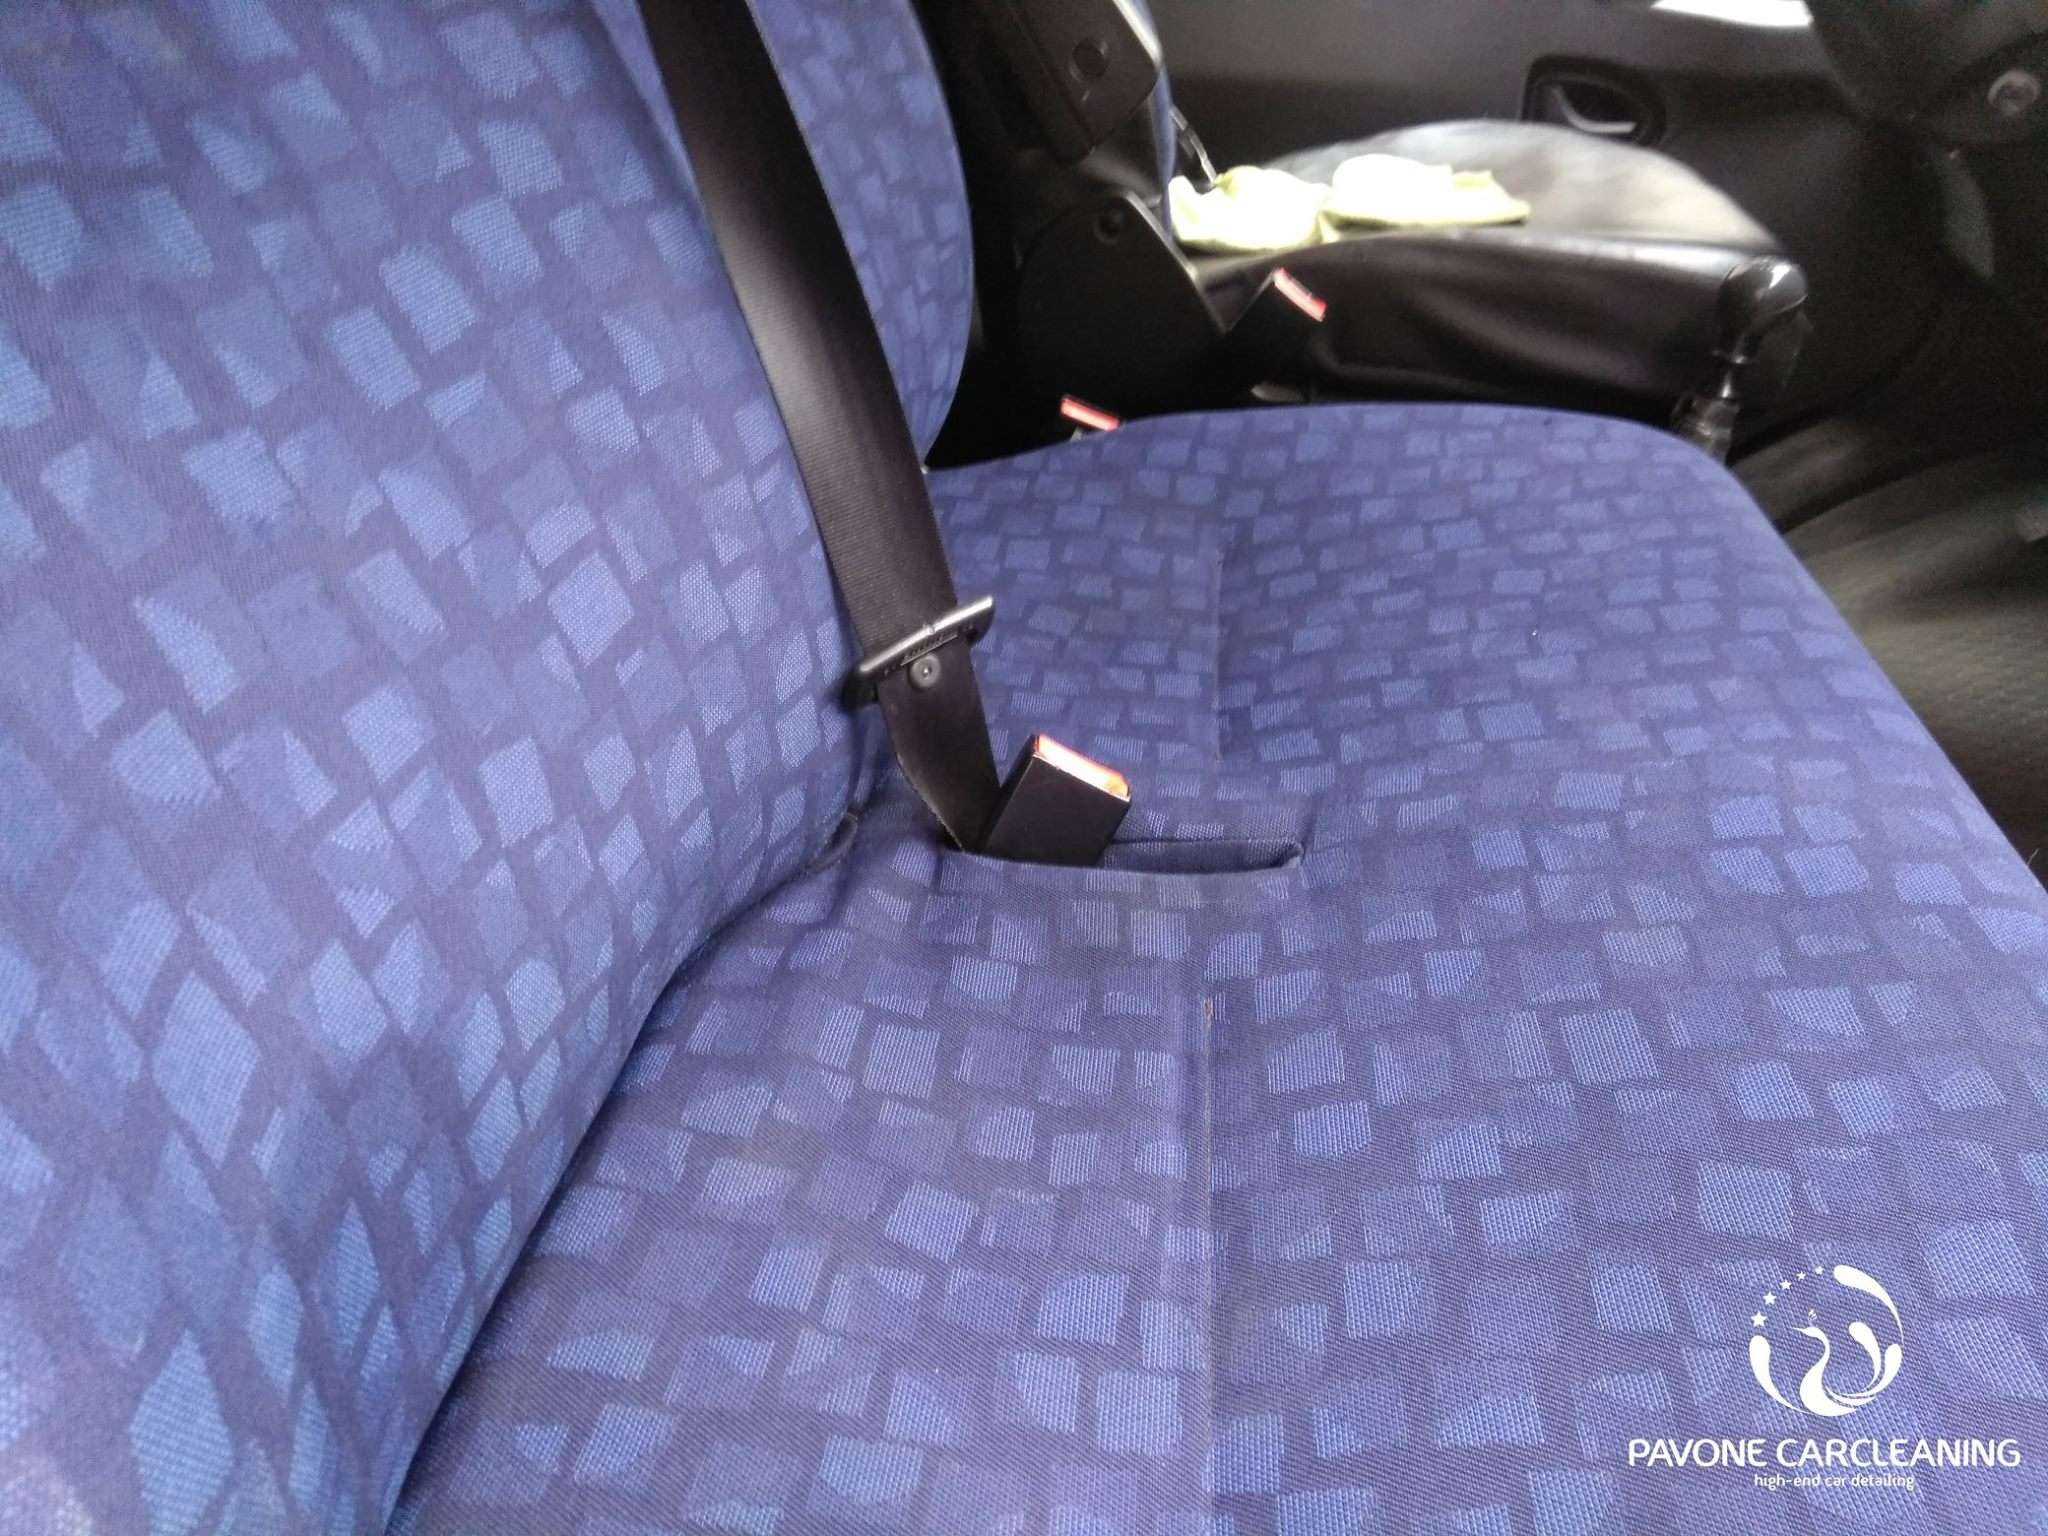 Interieur Iveco Daily na behandeling